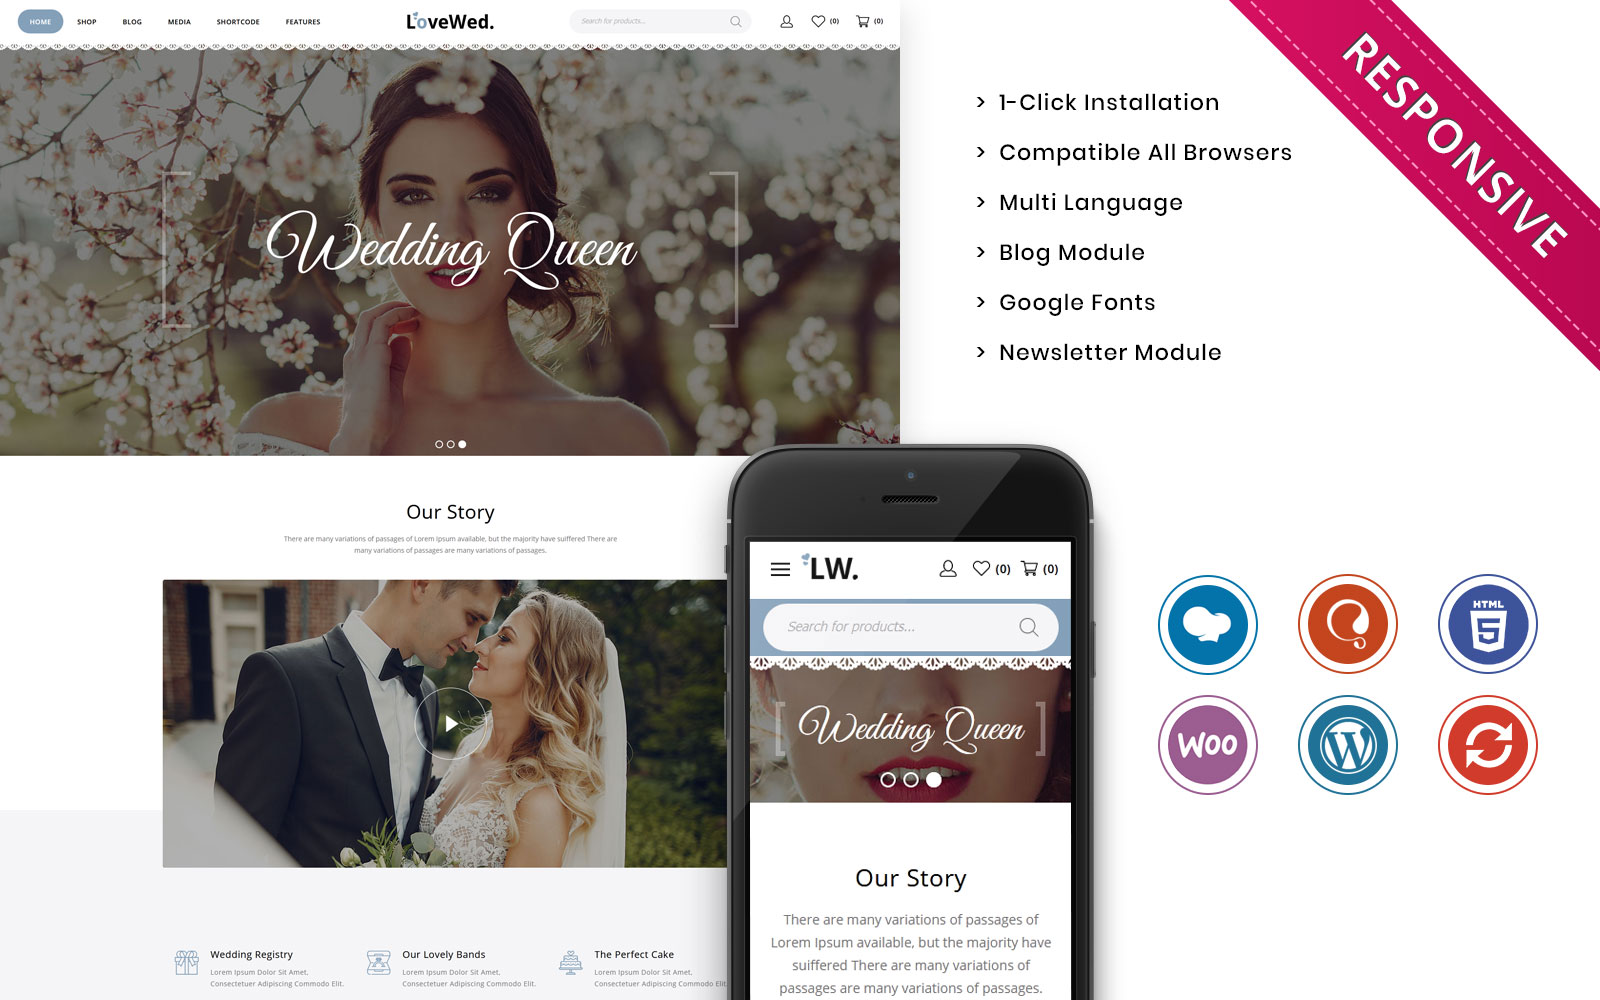 Bootstrap motyw WooCommerce Lovewed - The Wedding Store Responsive #108795